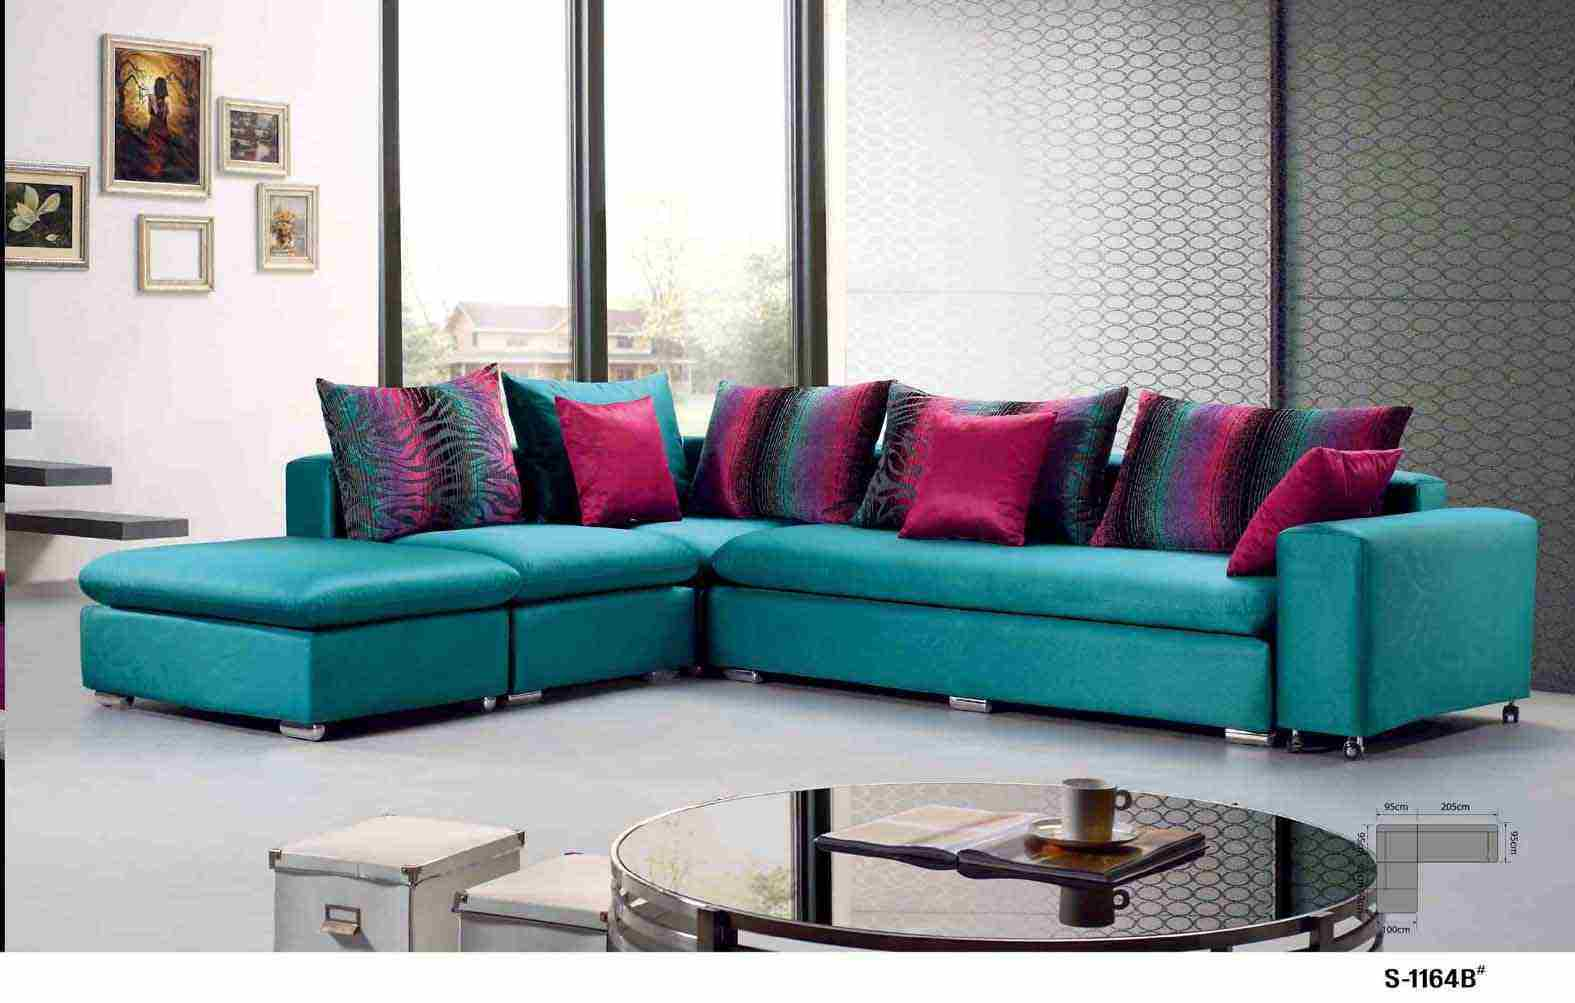 china sofa fabric slipcovers for leather sofas uk colorful s 1164b